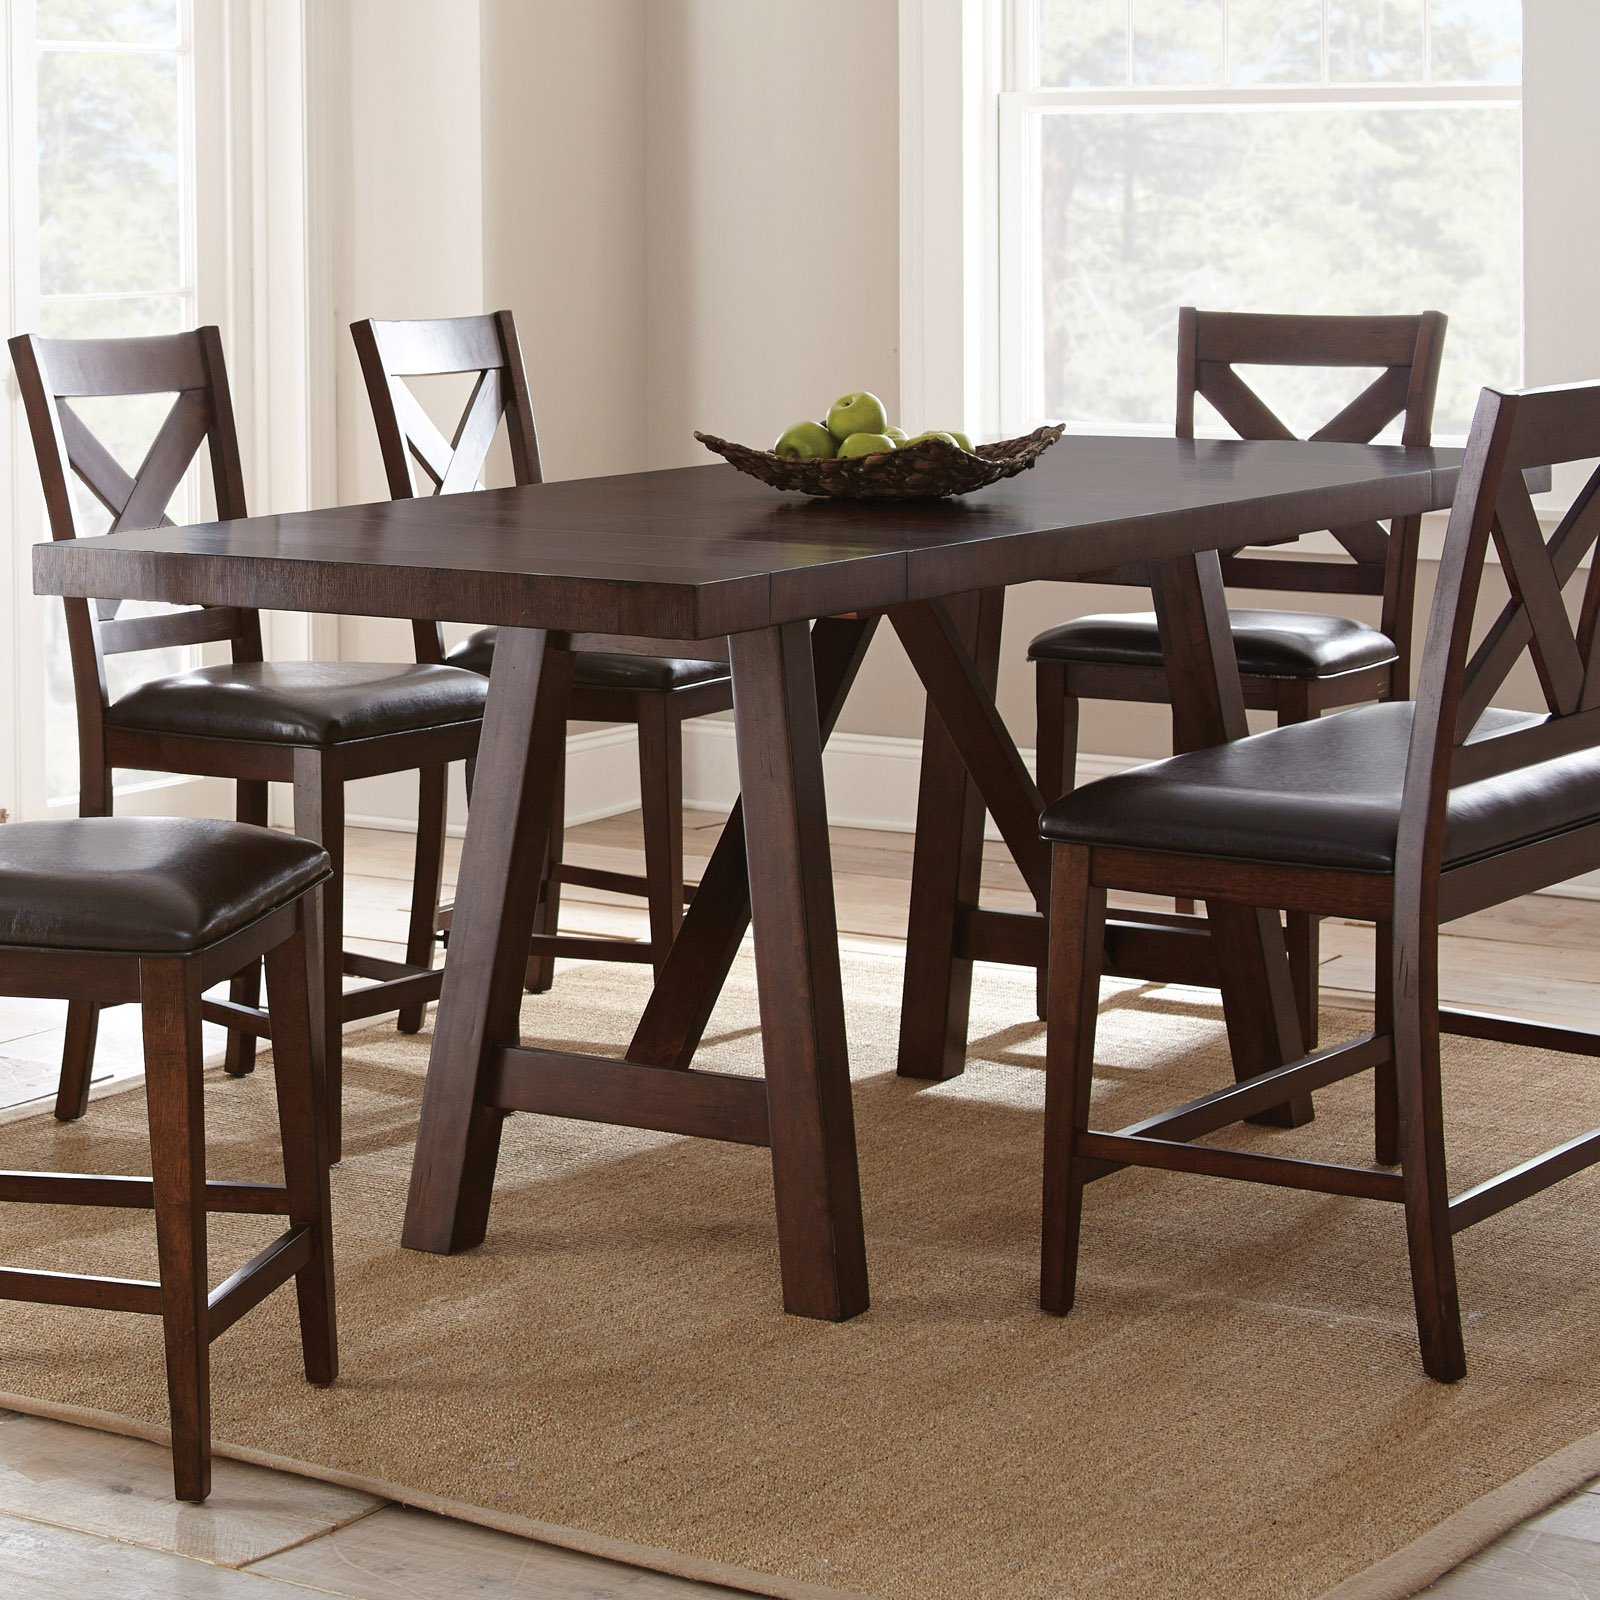 Steve Silver Clapton Counter Height Dining Table